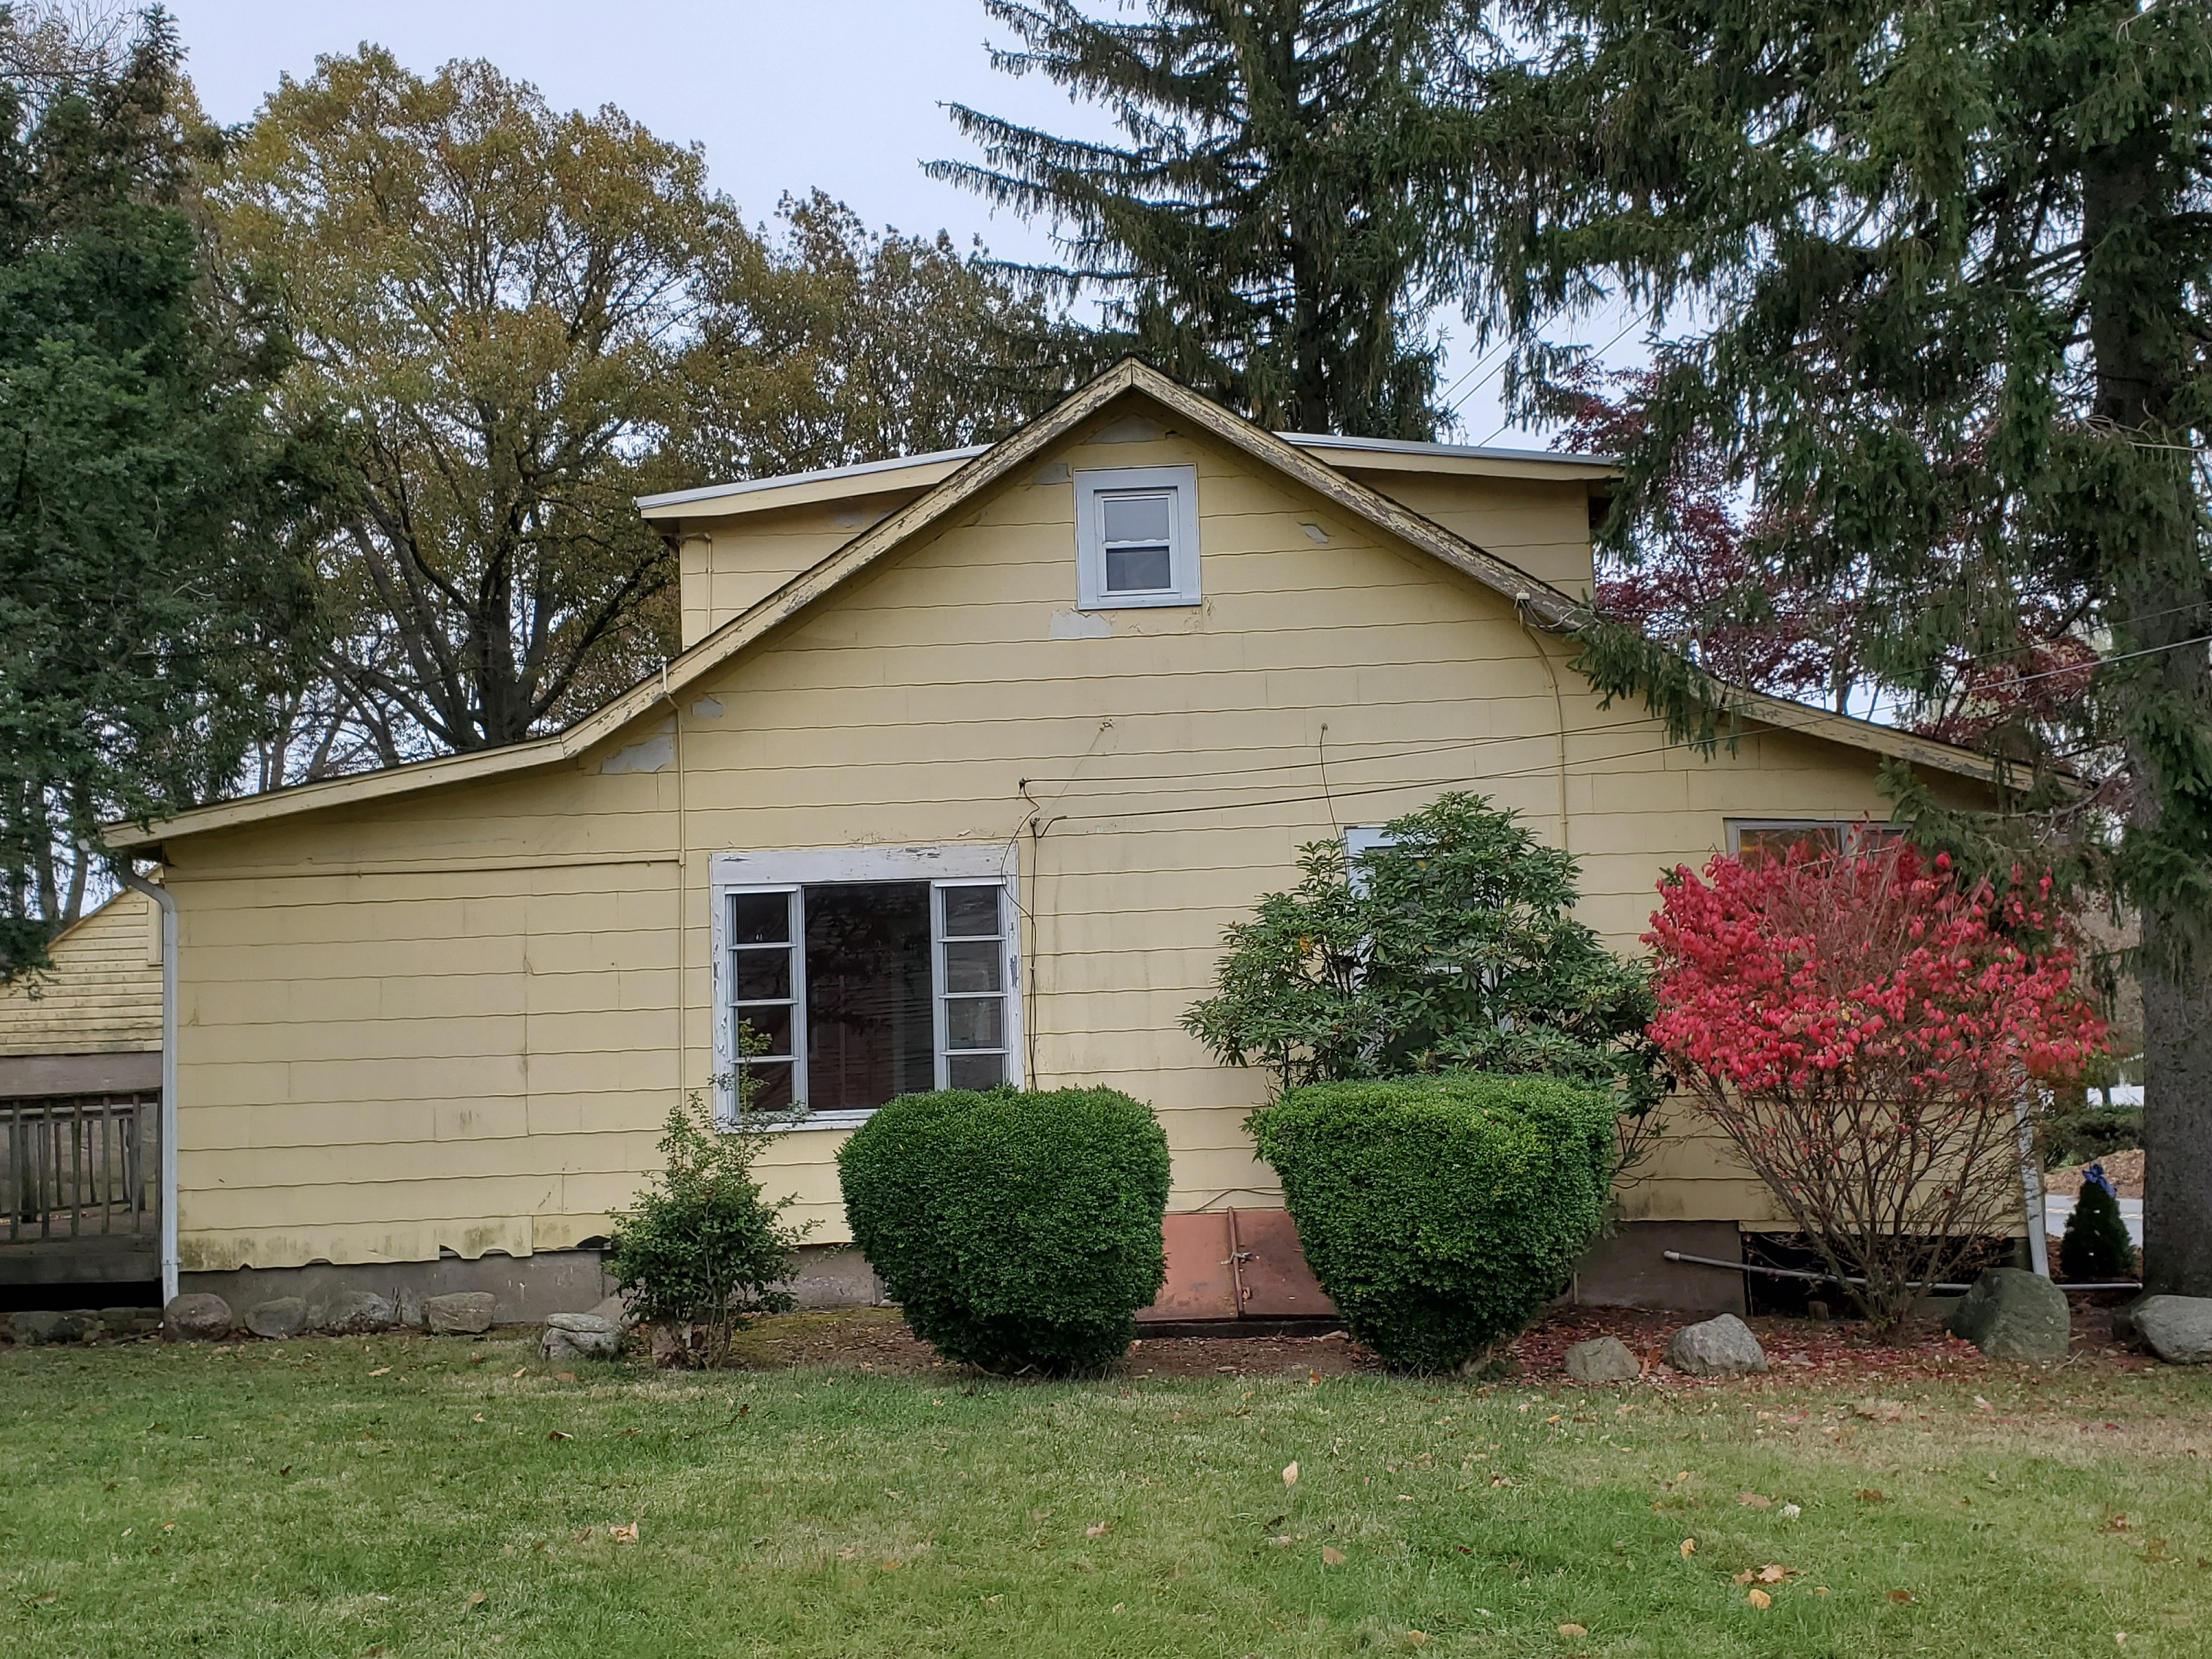 [SOLD] 358 N Haledon Ave. North Haledon, NJ 07508 $269,900